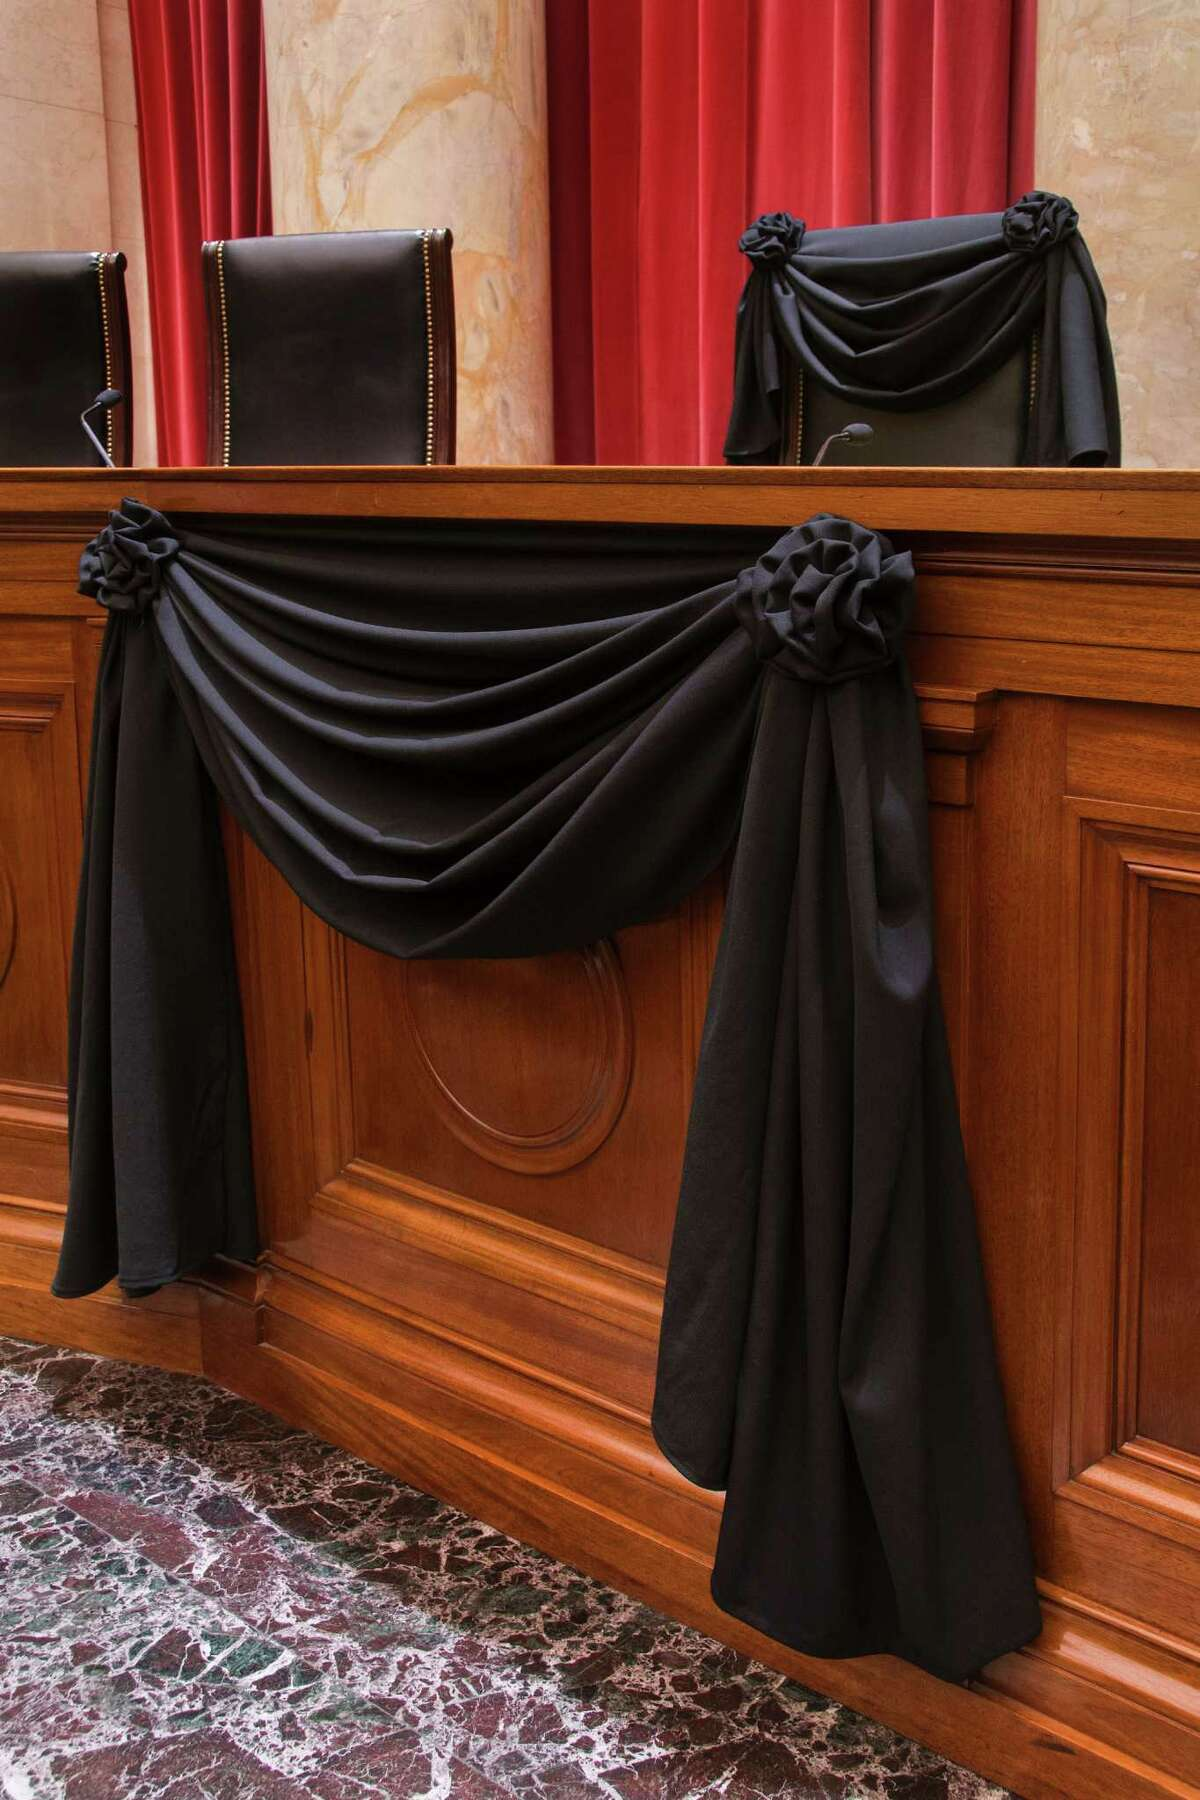 """This photo obtained February 16, 2016 courtesy of the US Supreme Court shows Supreme Court Associate Justice Antonin Scalias Bench Chair and the Bench in front of his seat draped in black following his death on February 13, 2016. The sudden death of Justice Antonin Scalia, a towering conservative icon on the US Supreme Court, has set off an epic election-year battle over his successor that will shape American life far into the future.Scalia died of an apparent heart attack at age 79, leaving what had been a conservative-dominated court evenly divided in a year of blockbuster cases -- on abortion, affirmative action, immigration and President Barack Obama's health care law. / AFP / Supreme Court of the United States / Supreme Court of the United Stat / RESTRICTED TO EDITORIAL USE - MANDATORY CREDIT """"AFP PHOTO / US SUPREME COURT"""" - NO MARKETING NO ADVERTISING CAMPAIGNS - DISTRIBUTED AS A SERVICE TO CLIENTS SUPREME COURT OF THE UNITED STAT/AFP/Getty Images"""